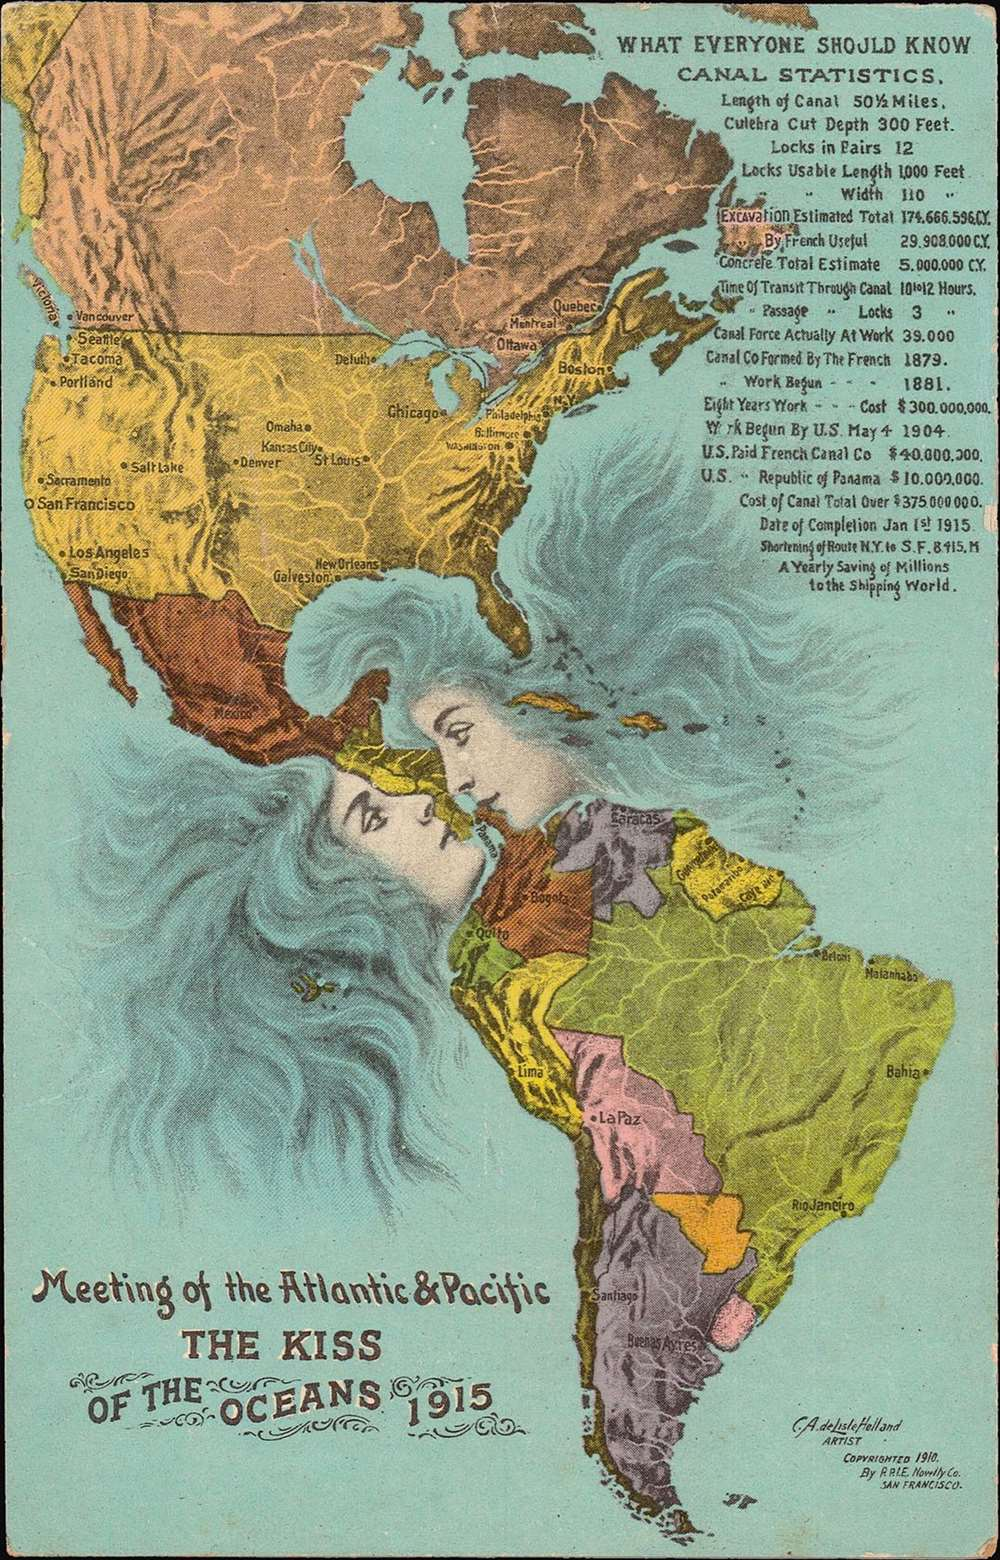 Meeting of the Atlantic and Pacific. 'The Kiss of the Oceans'.